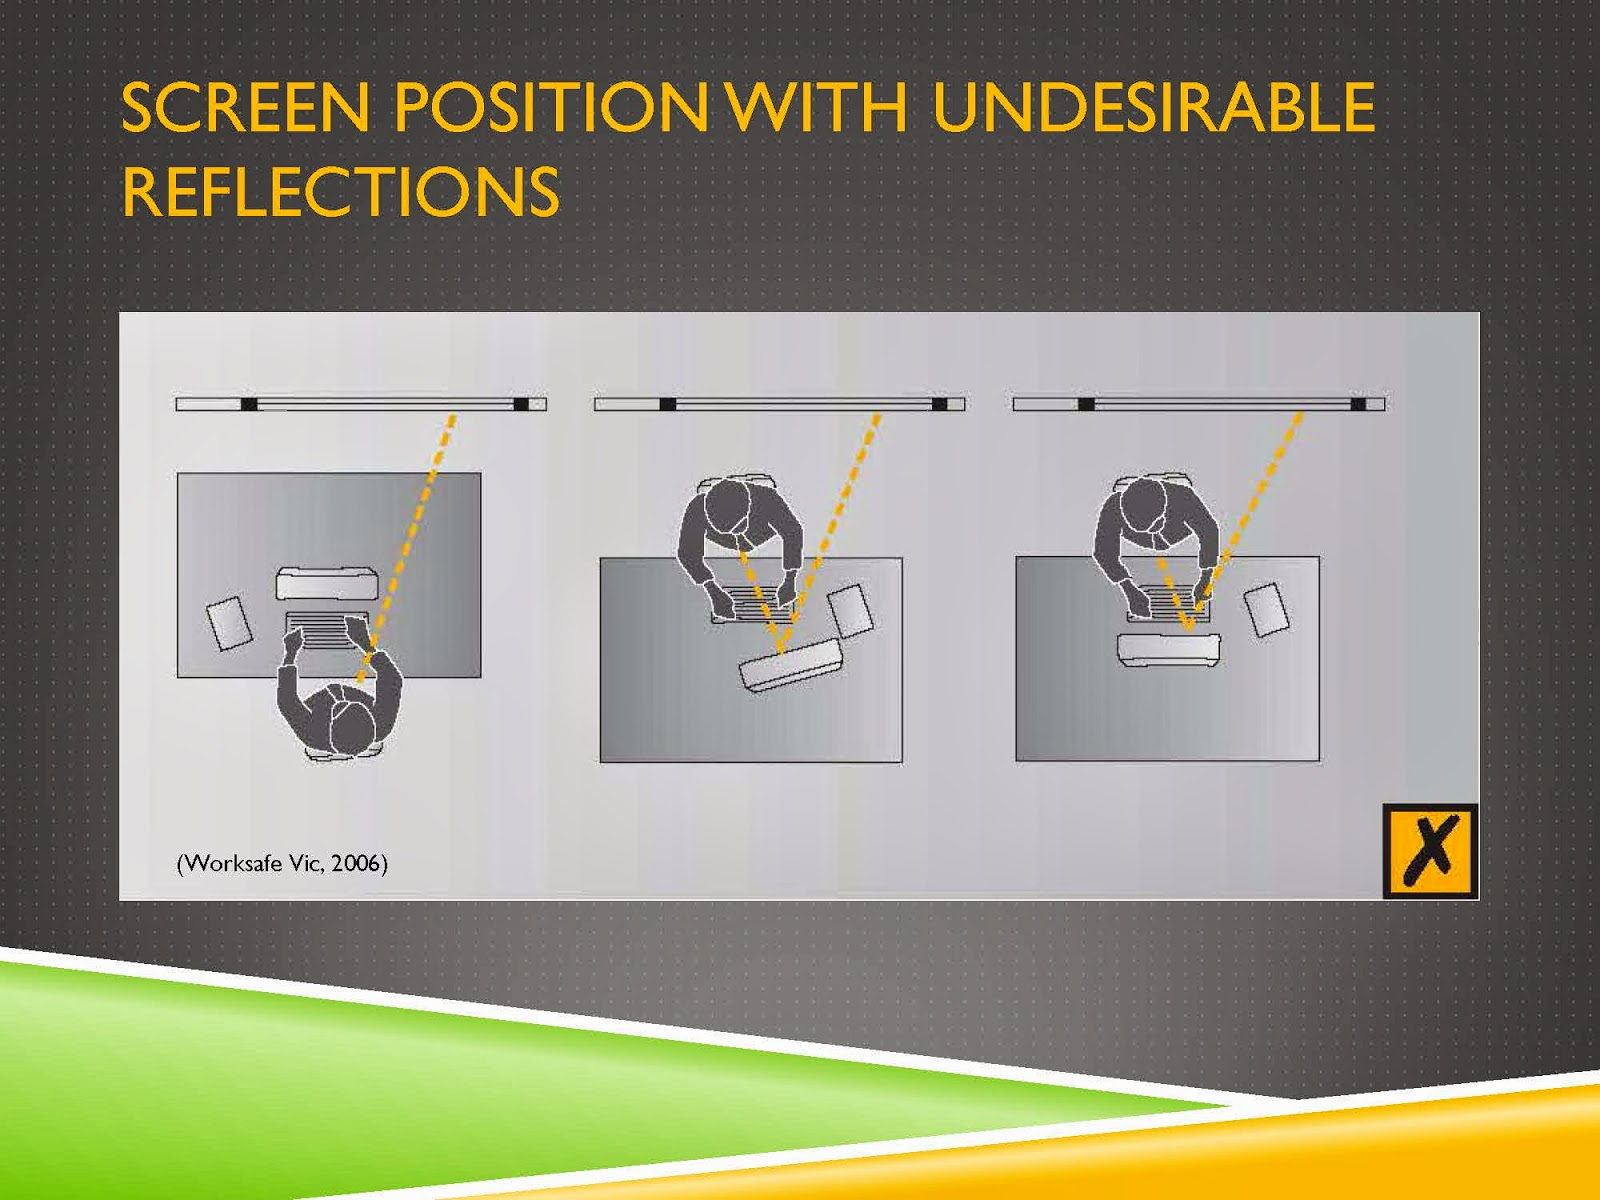 SCREEN POSITIONS WITH UNDESIRABLE REFLECTIONS